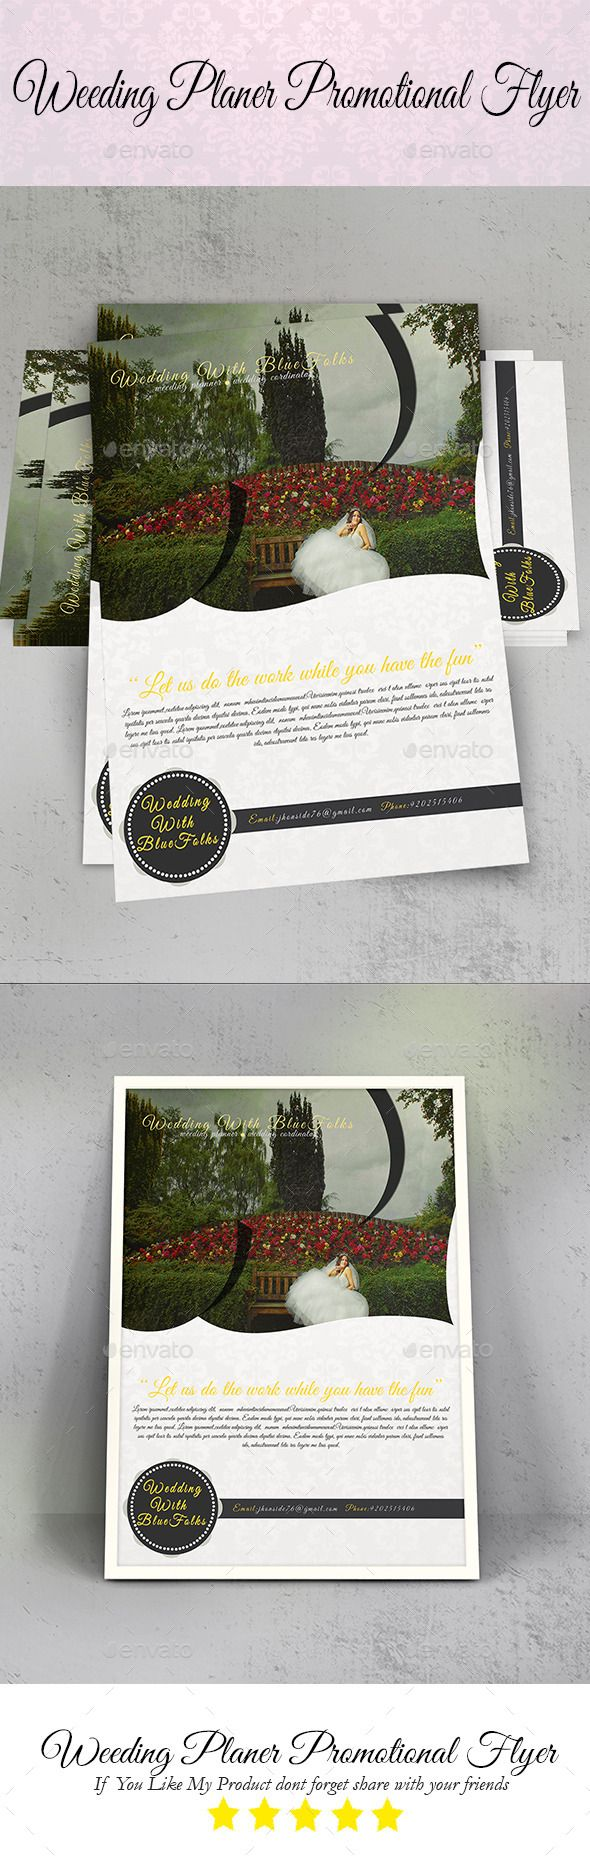 Wedding Planer Promotional Flyer — Photoshop Psd #modern #pink • Available  Here